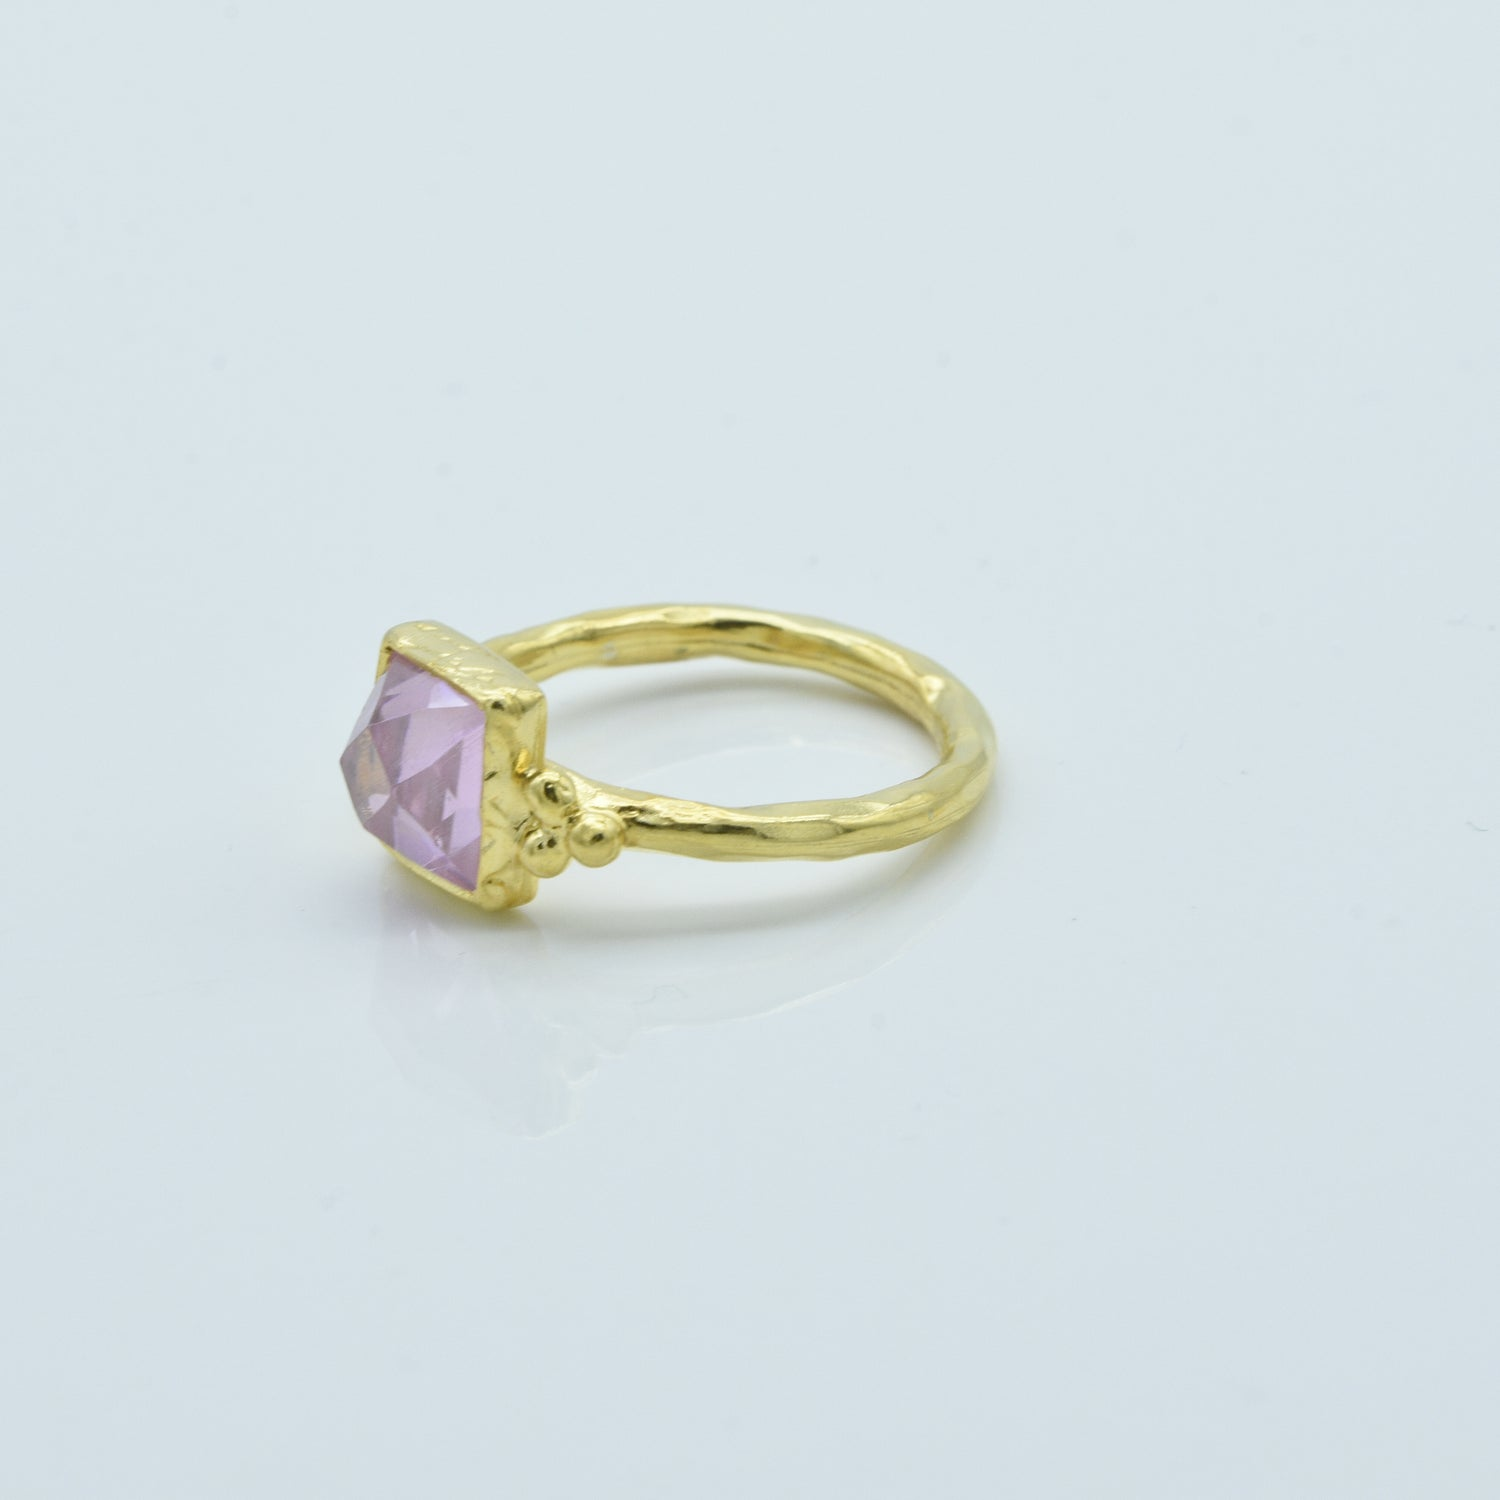 Aylas Crystal Quartz ring - 21ct Gold plated 925 silver - Handmade in Ottoman Style by Artisan